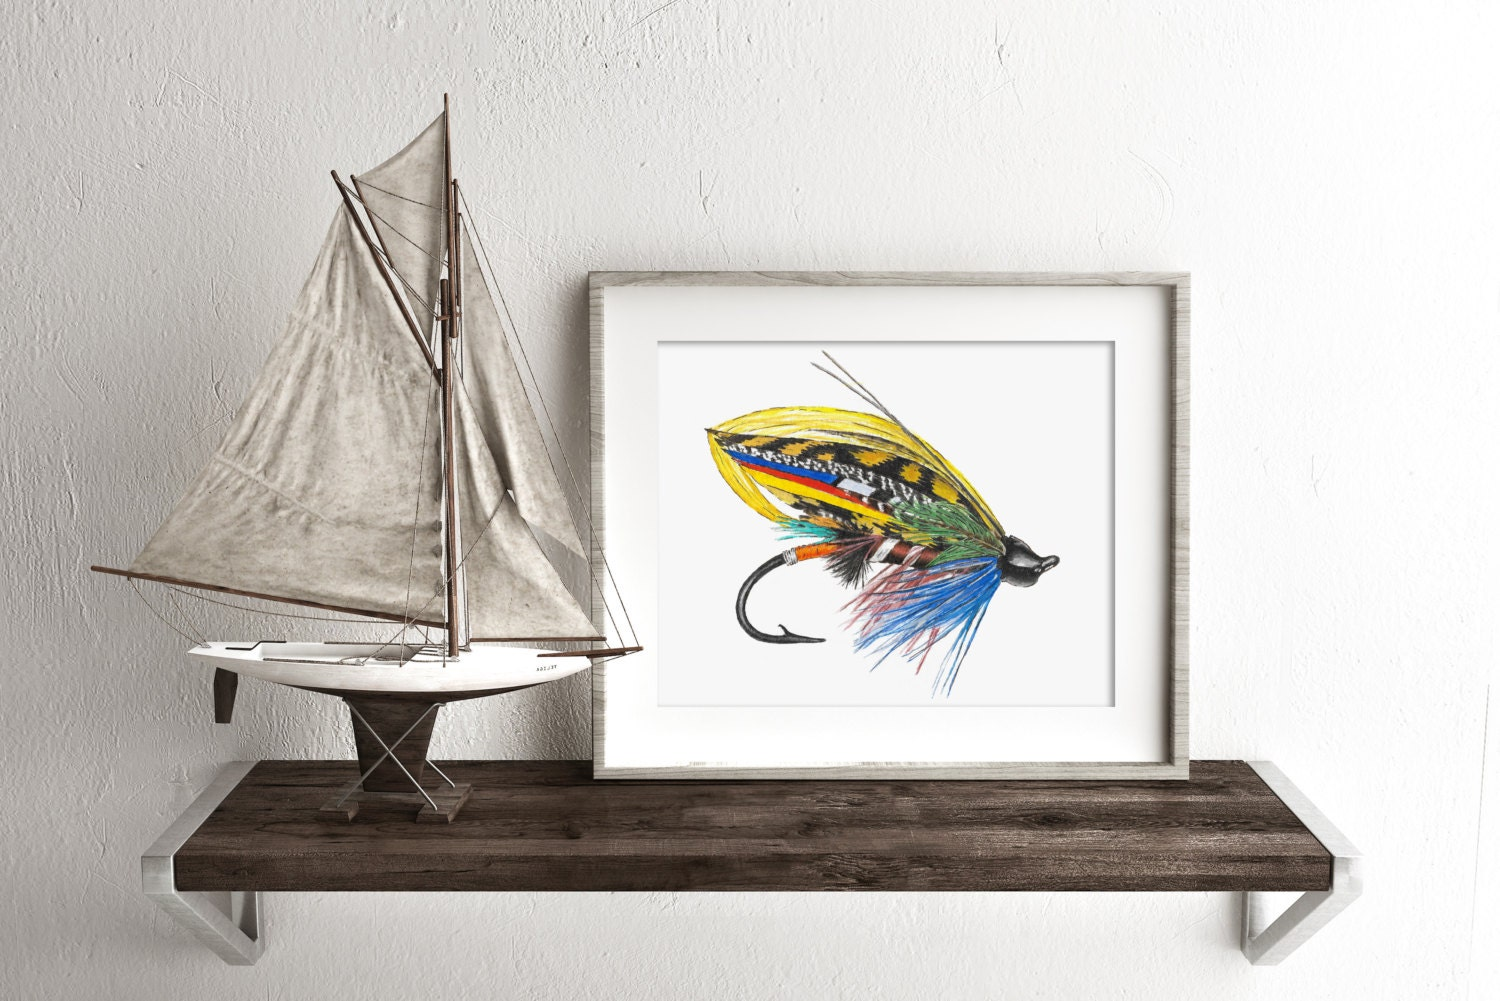 Watercolor Trout Fly Fly Fishing Gifts Fishing Lure Art